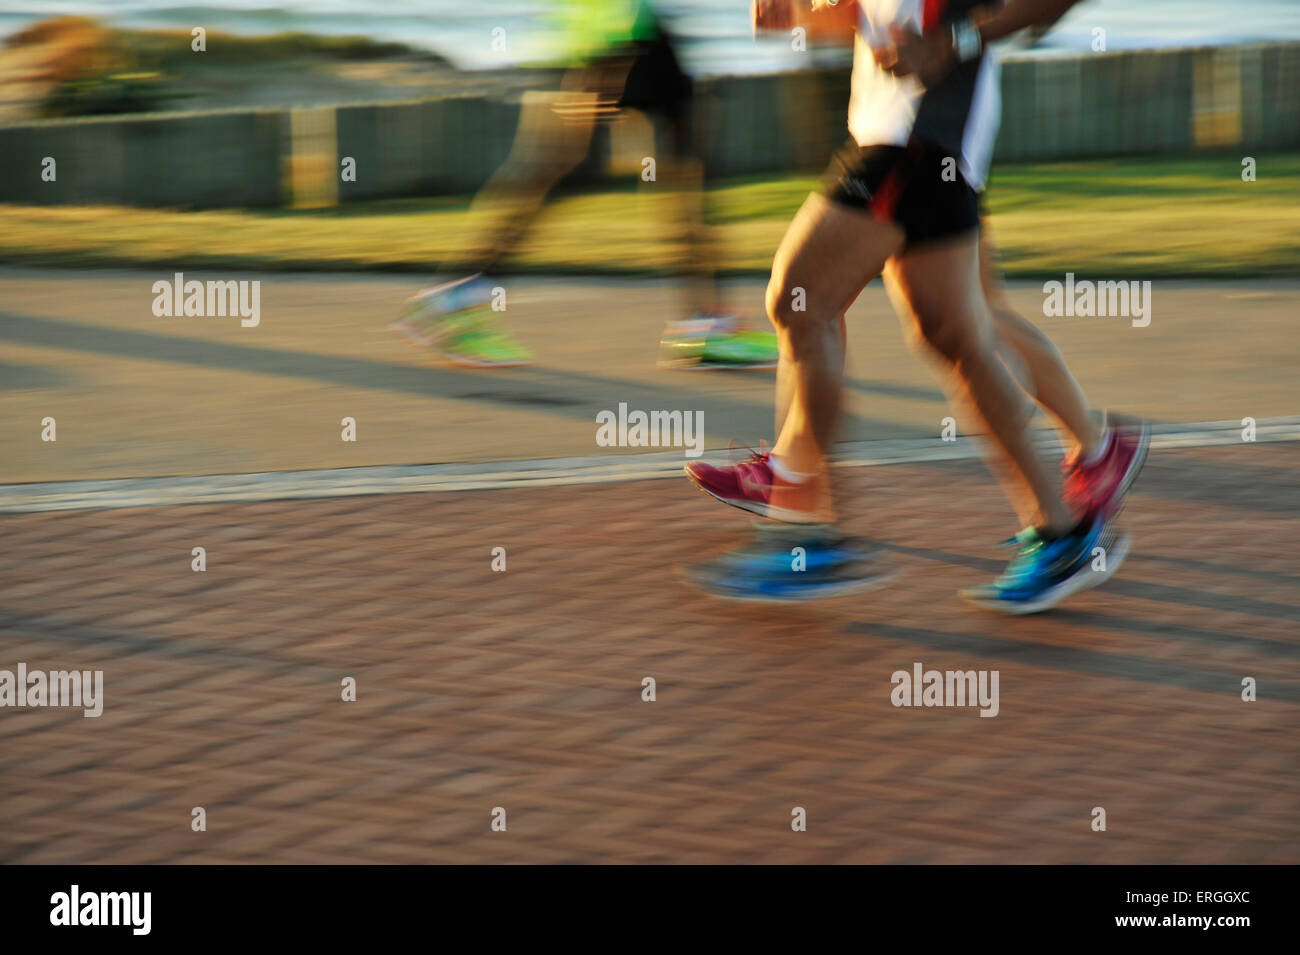 Muscular legs and feet of athletic adult men and woman runners taking early morning exercise on beachfront - Stock Image